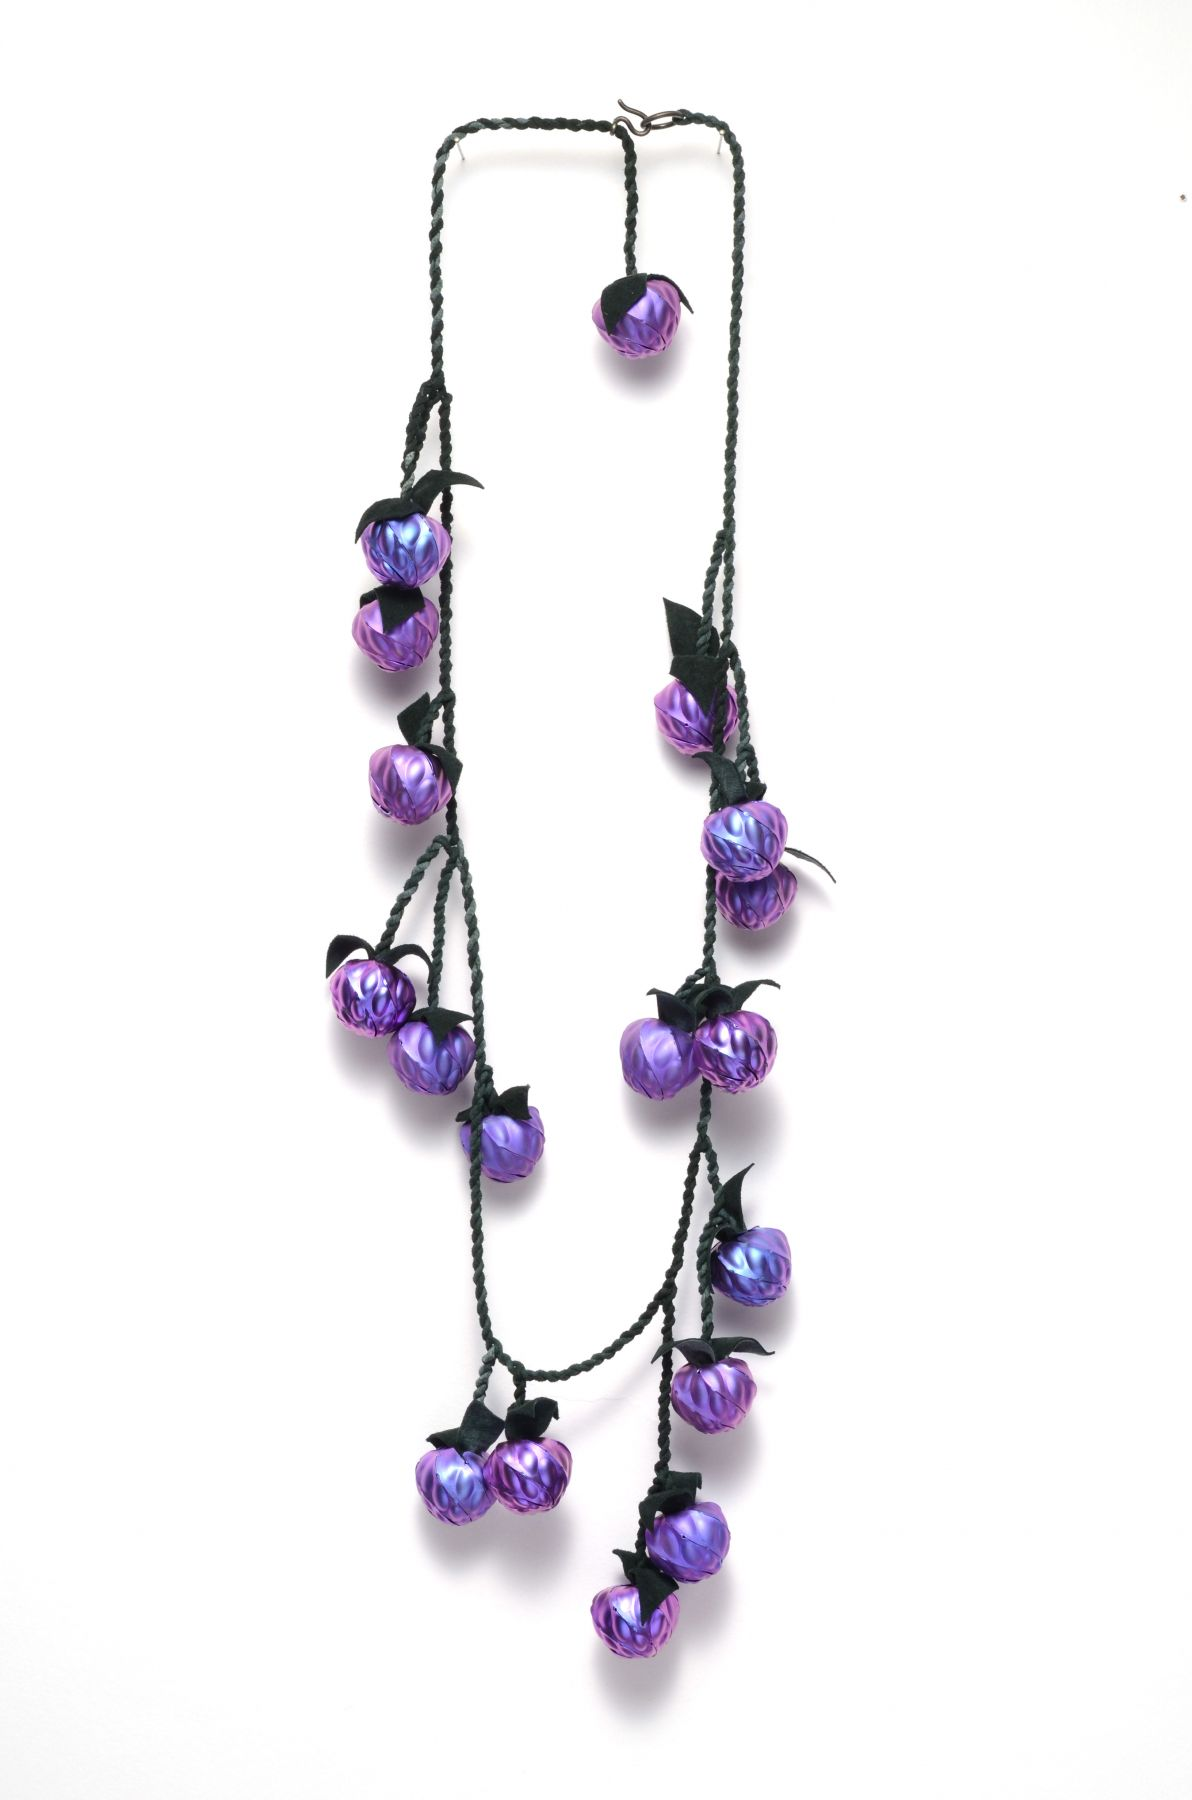 David Bielander Blackberries Necklace